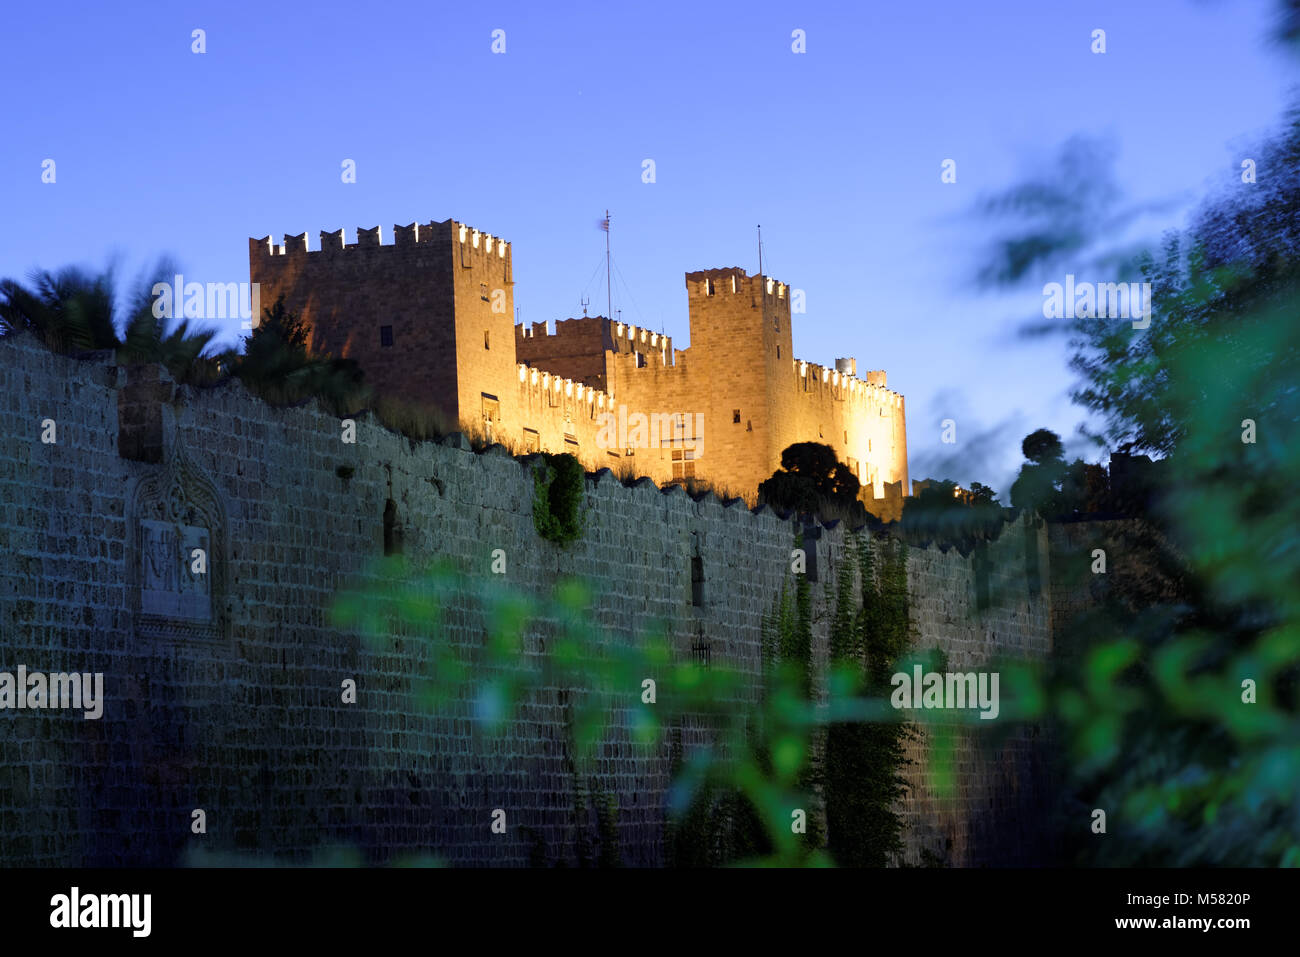 Night view to the Palace of the Grand Master of the Knights of Rhodes, Greece - Stock Image